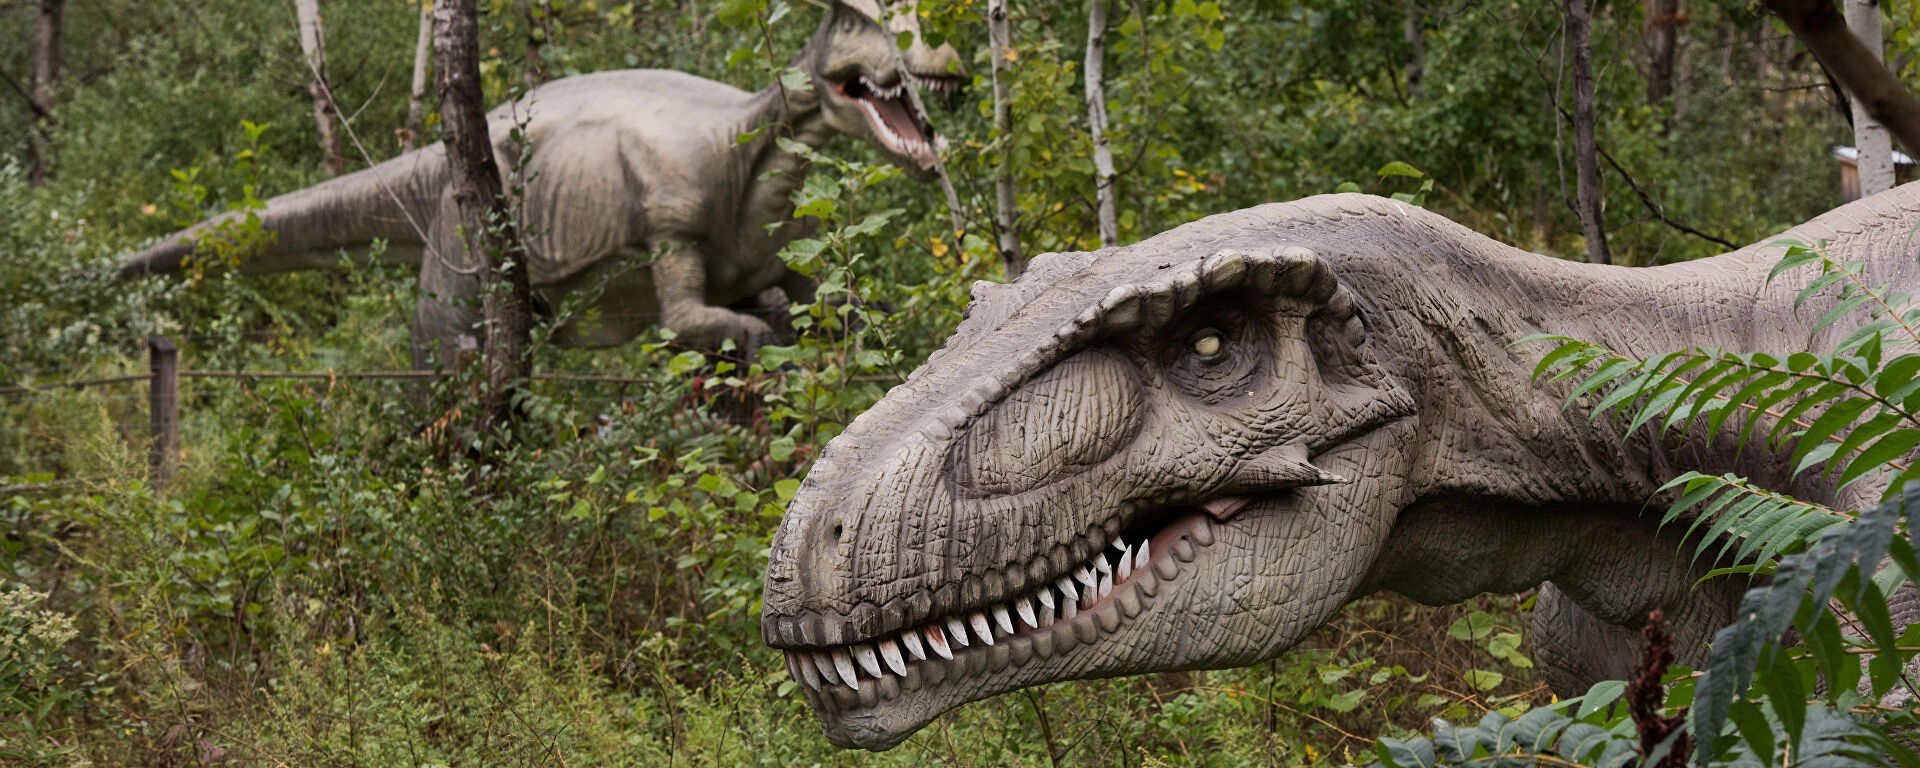 Life-size animatronic dinosaurs are seen at Field Station: Dinosaurs, a 20-acre outdoor Jurassic learning expedition and family tourist attraction in Secaucus, NJ Thursday, September 25, 2014 - Sputnik Mundo, 1920, 02.07.2021